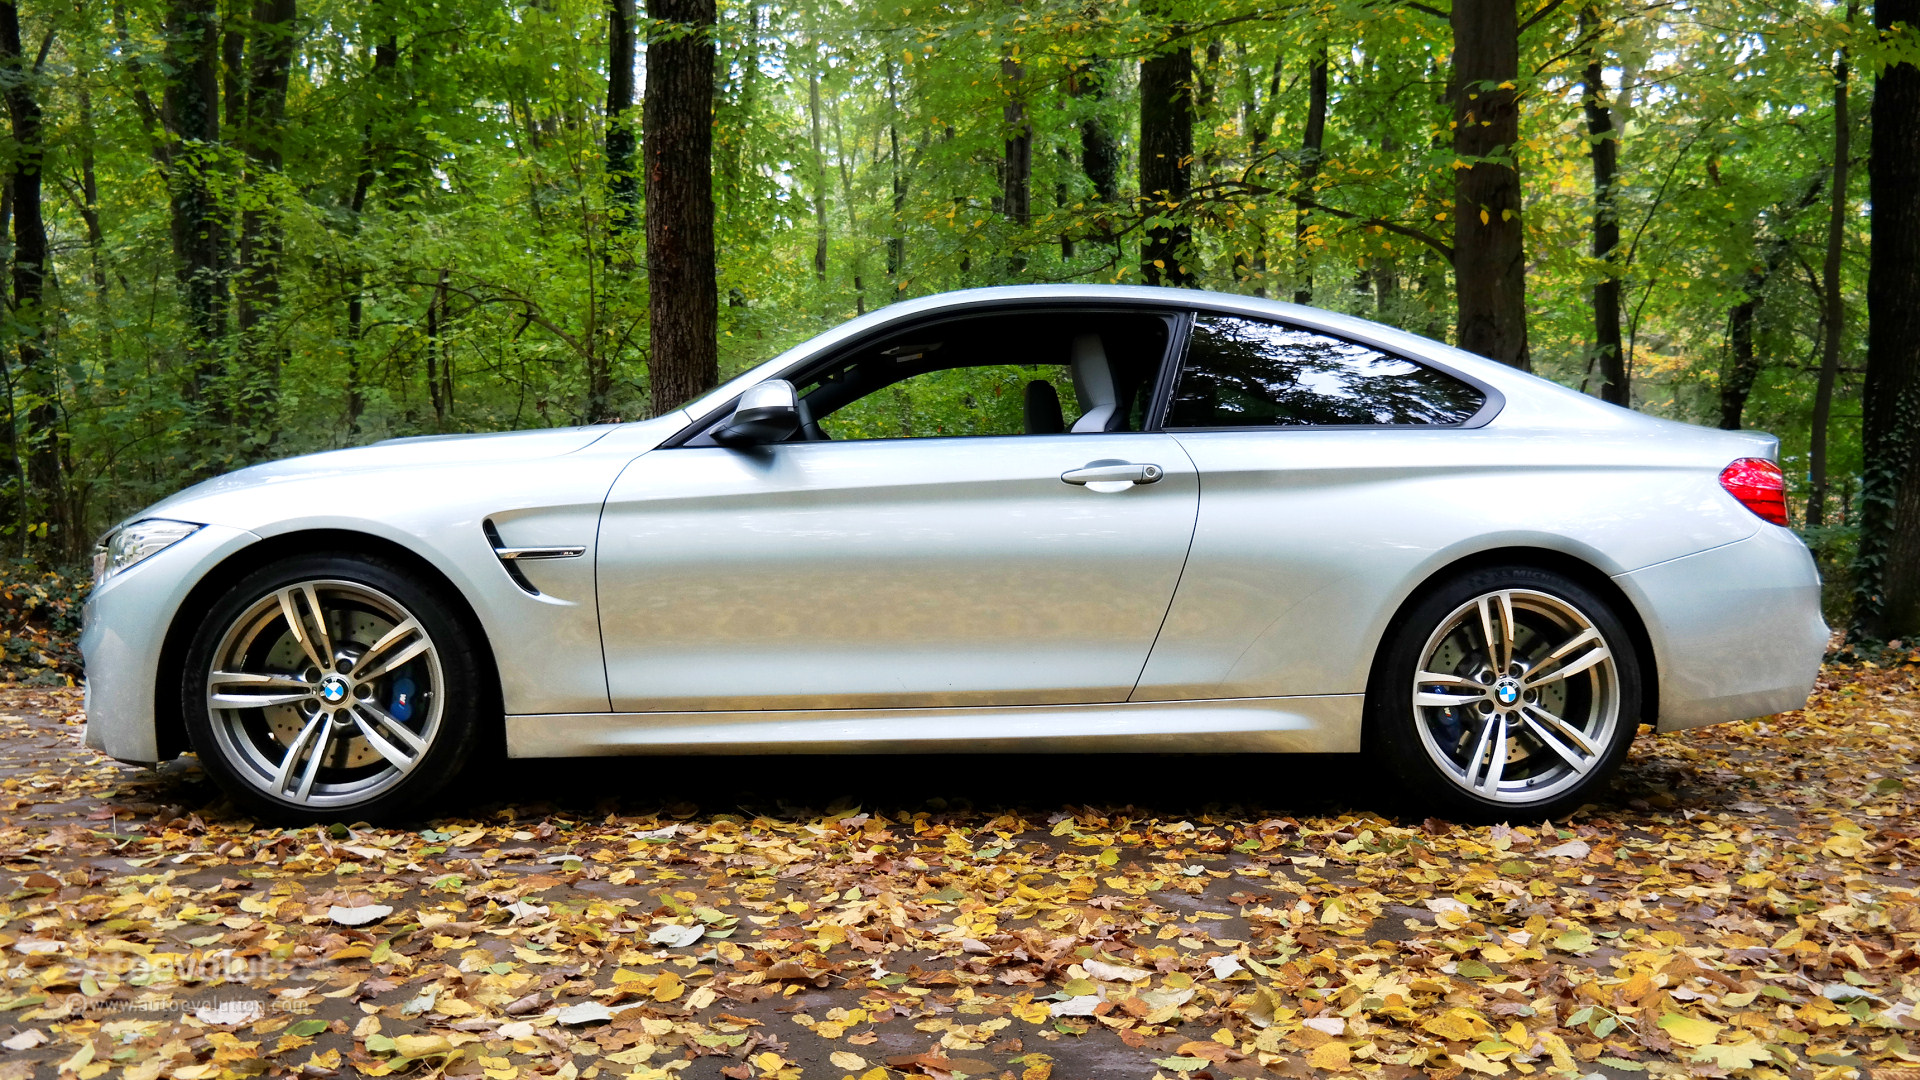 Drift Car Wallpaper Hd The Practical Side Of The Bmw M4 Autoevolution